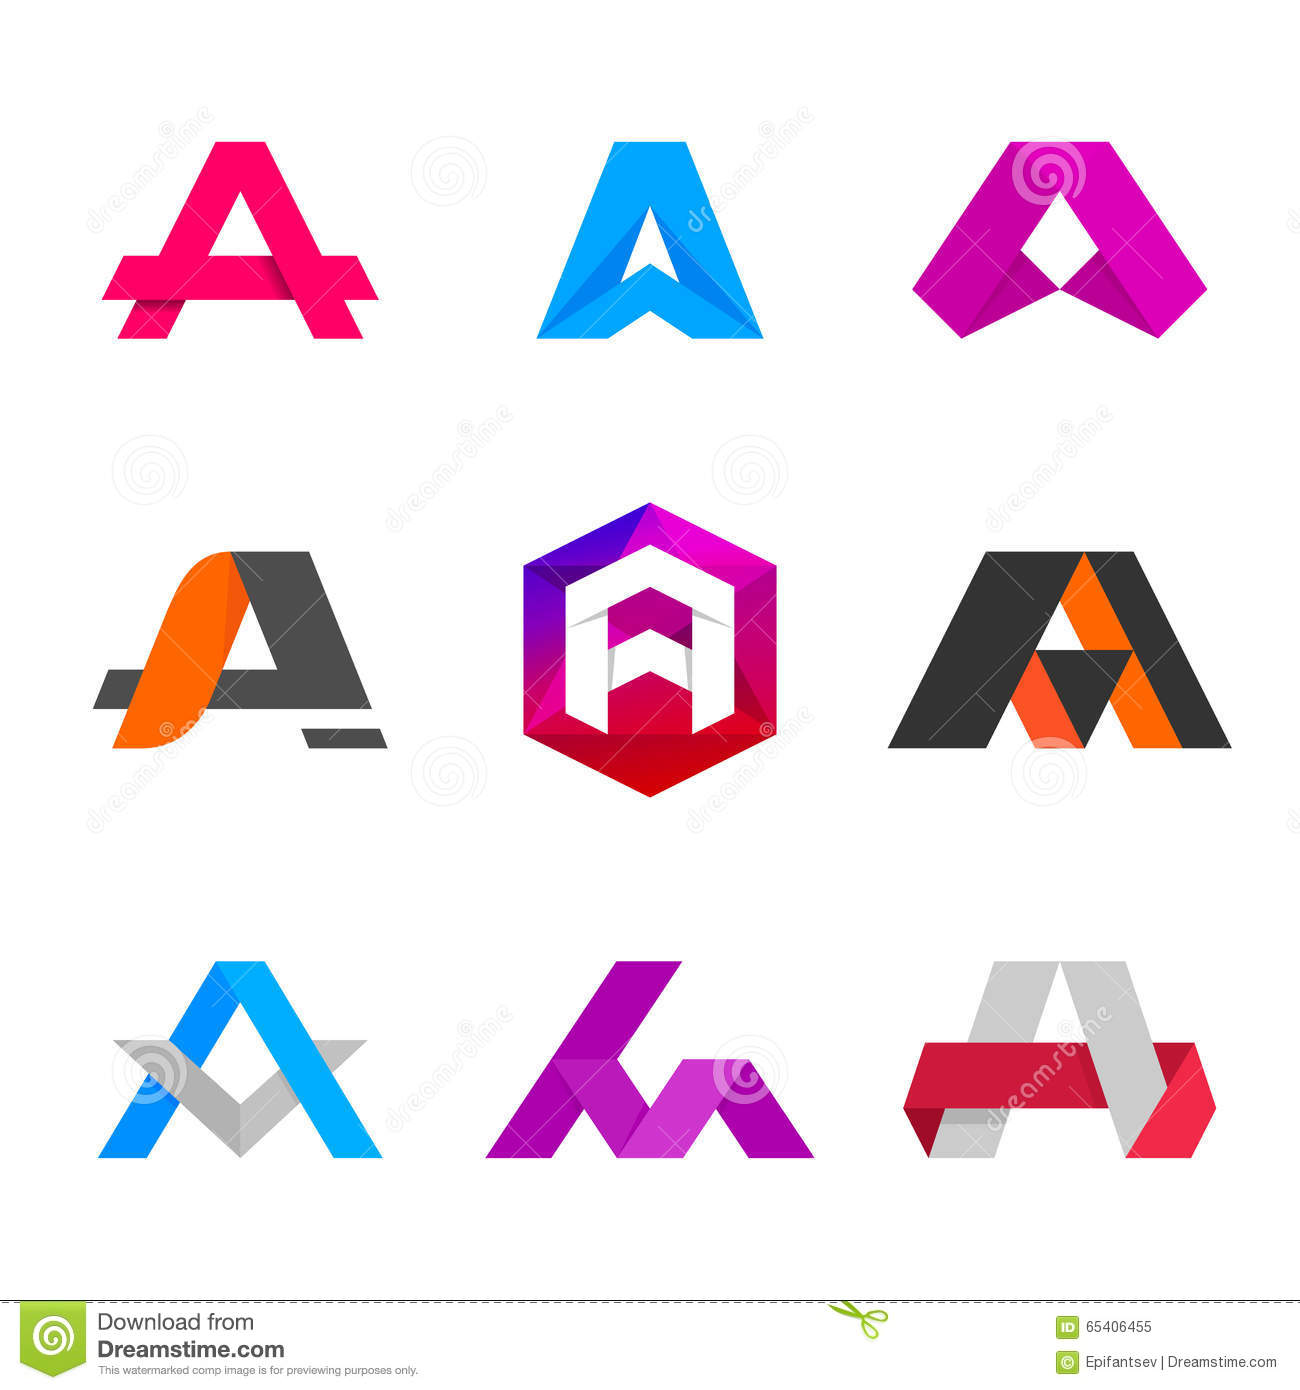 Letter g icon or logo design template elements stock vector letter a logo icon design template elements royalty free stock photo altavistaventures Gallery